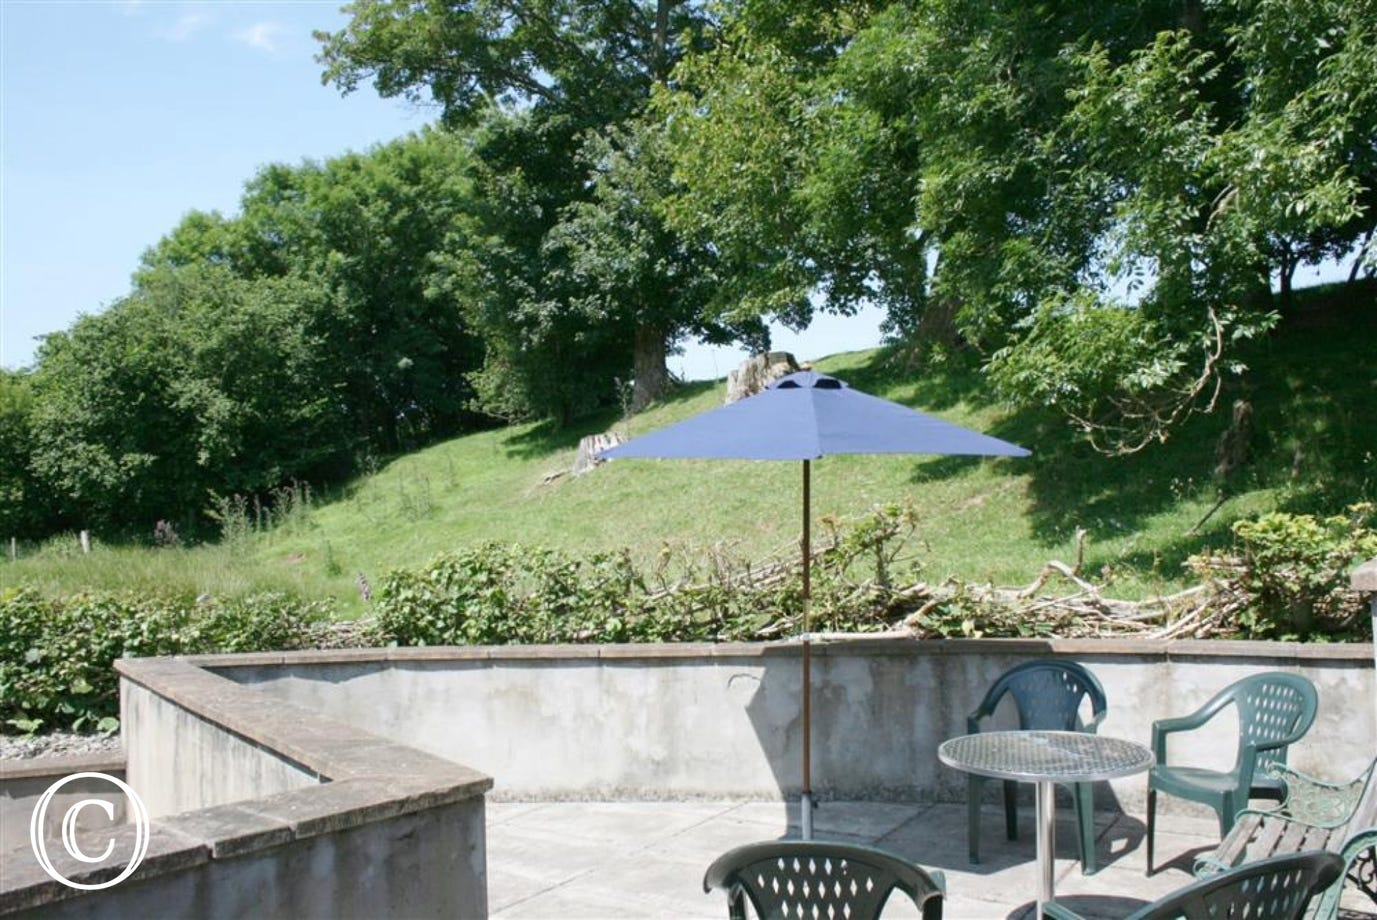 There is a flagged patio with garden furniture to the rear, and access to open countryside